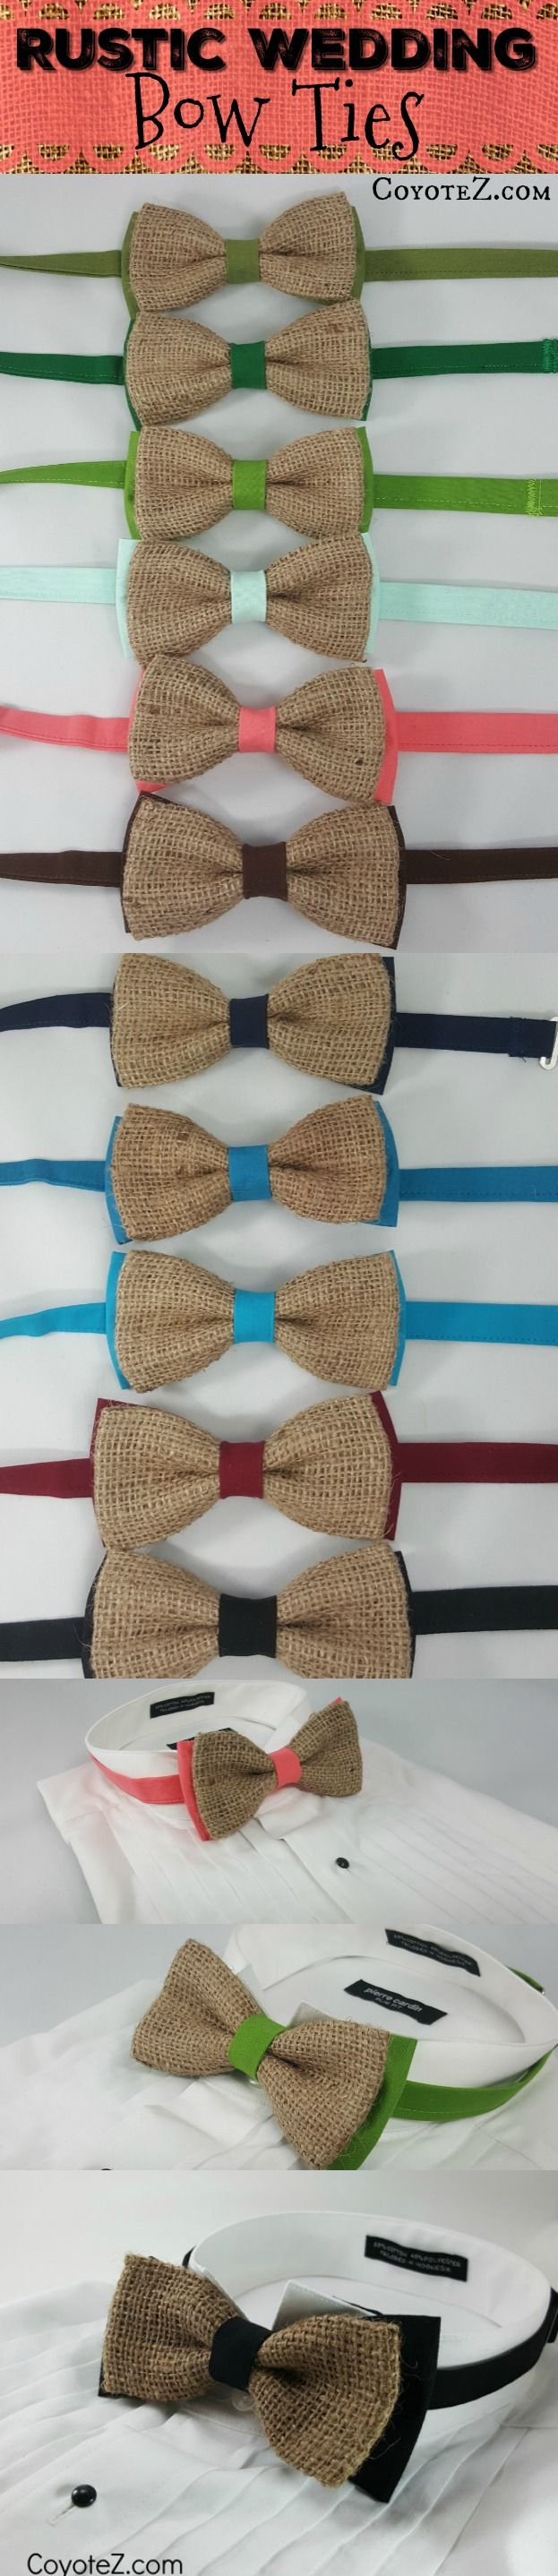 Rustic Wedding bow ties in all sorts of colors! https://www.etsy.com/listing/507958897/rustic-bowtie-custom-bow-tie-burlap